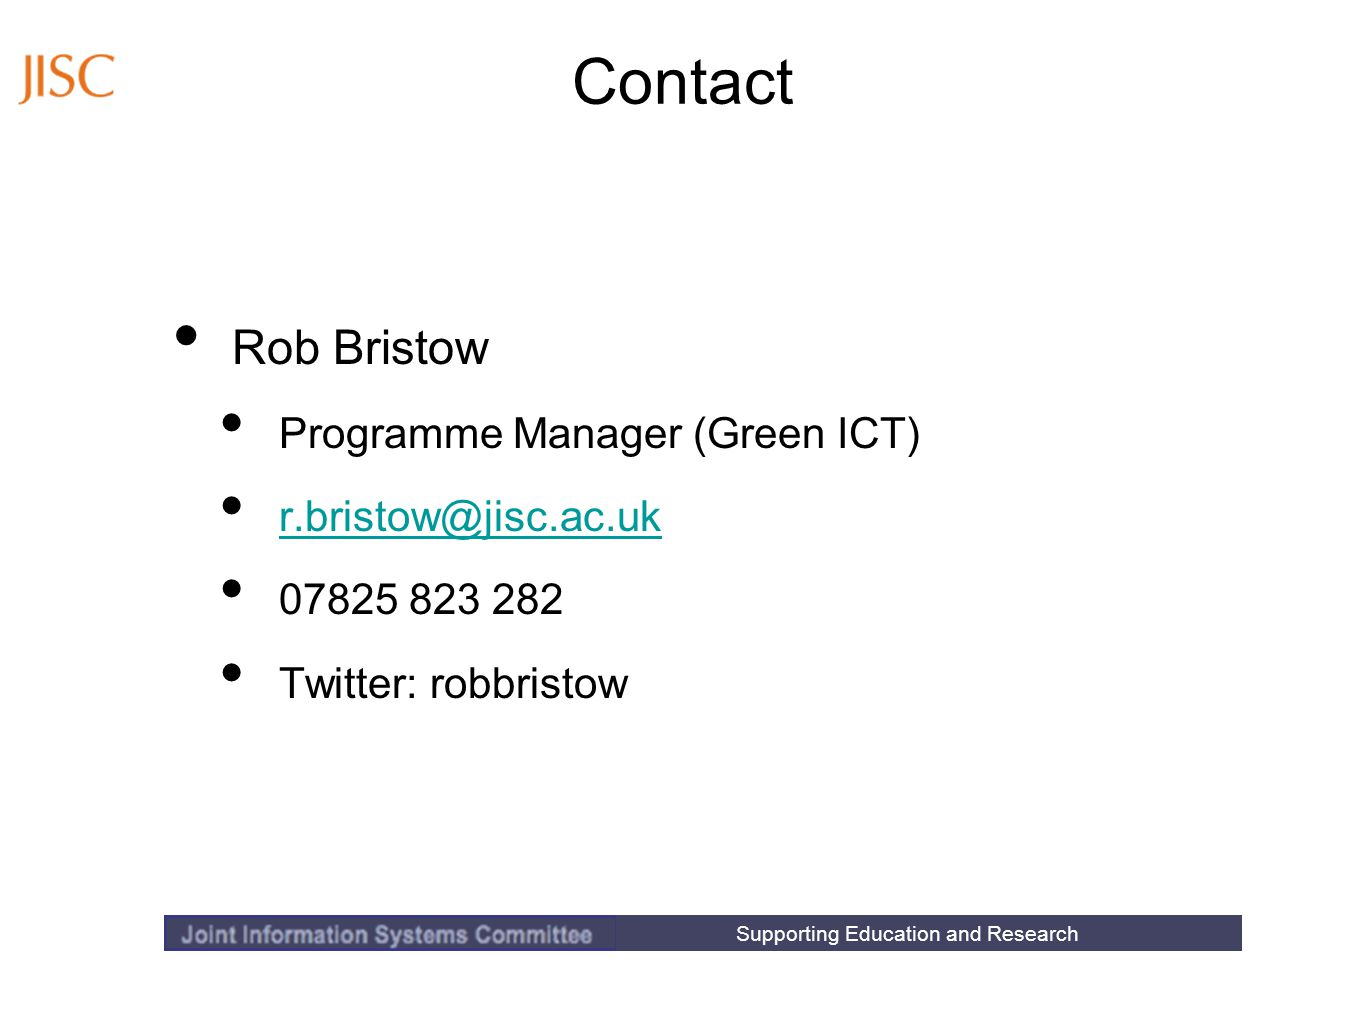 Supporting Education and Research Contact Rob Bristow Programme Manager (Green ICT) r.bristow@jisc.ac.uk 07825 823 282 Twitter: robbristow